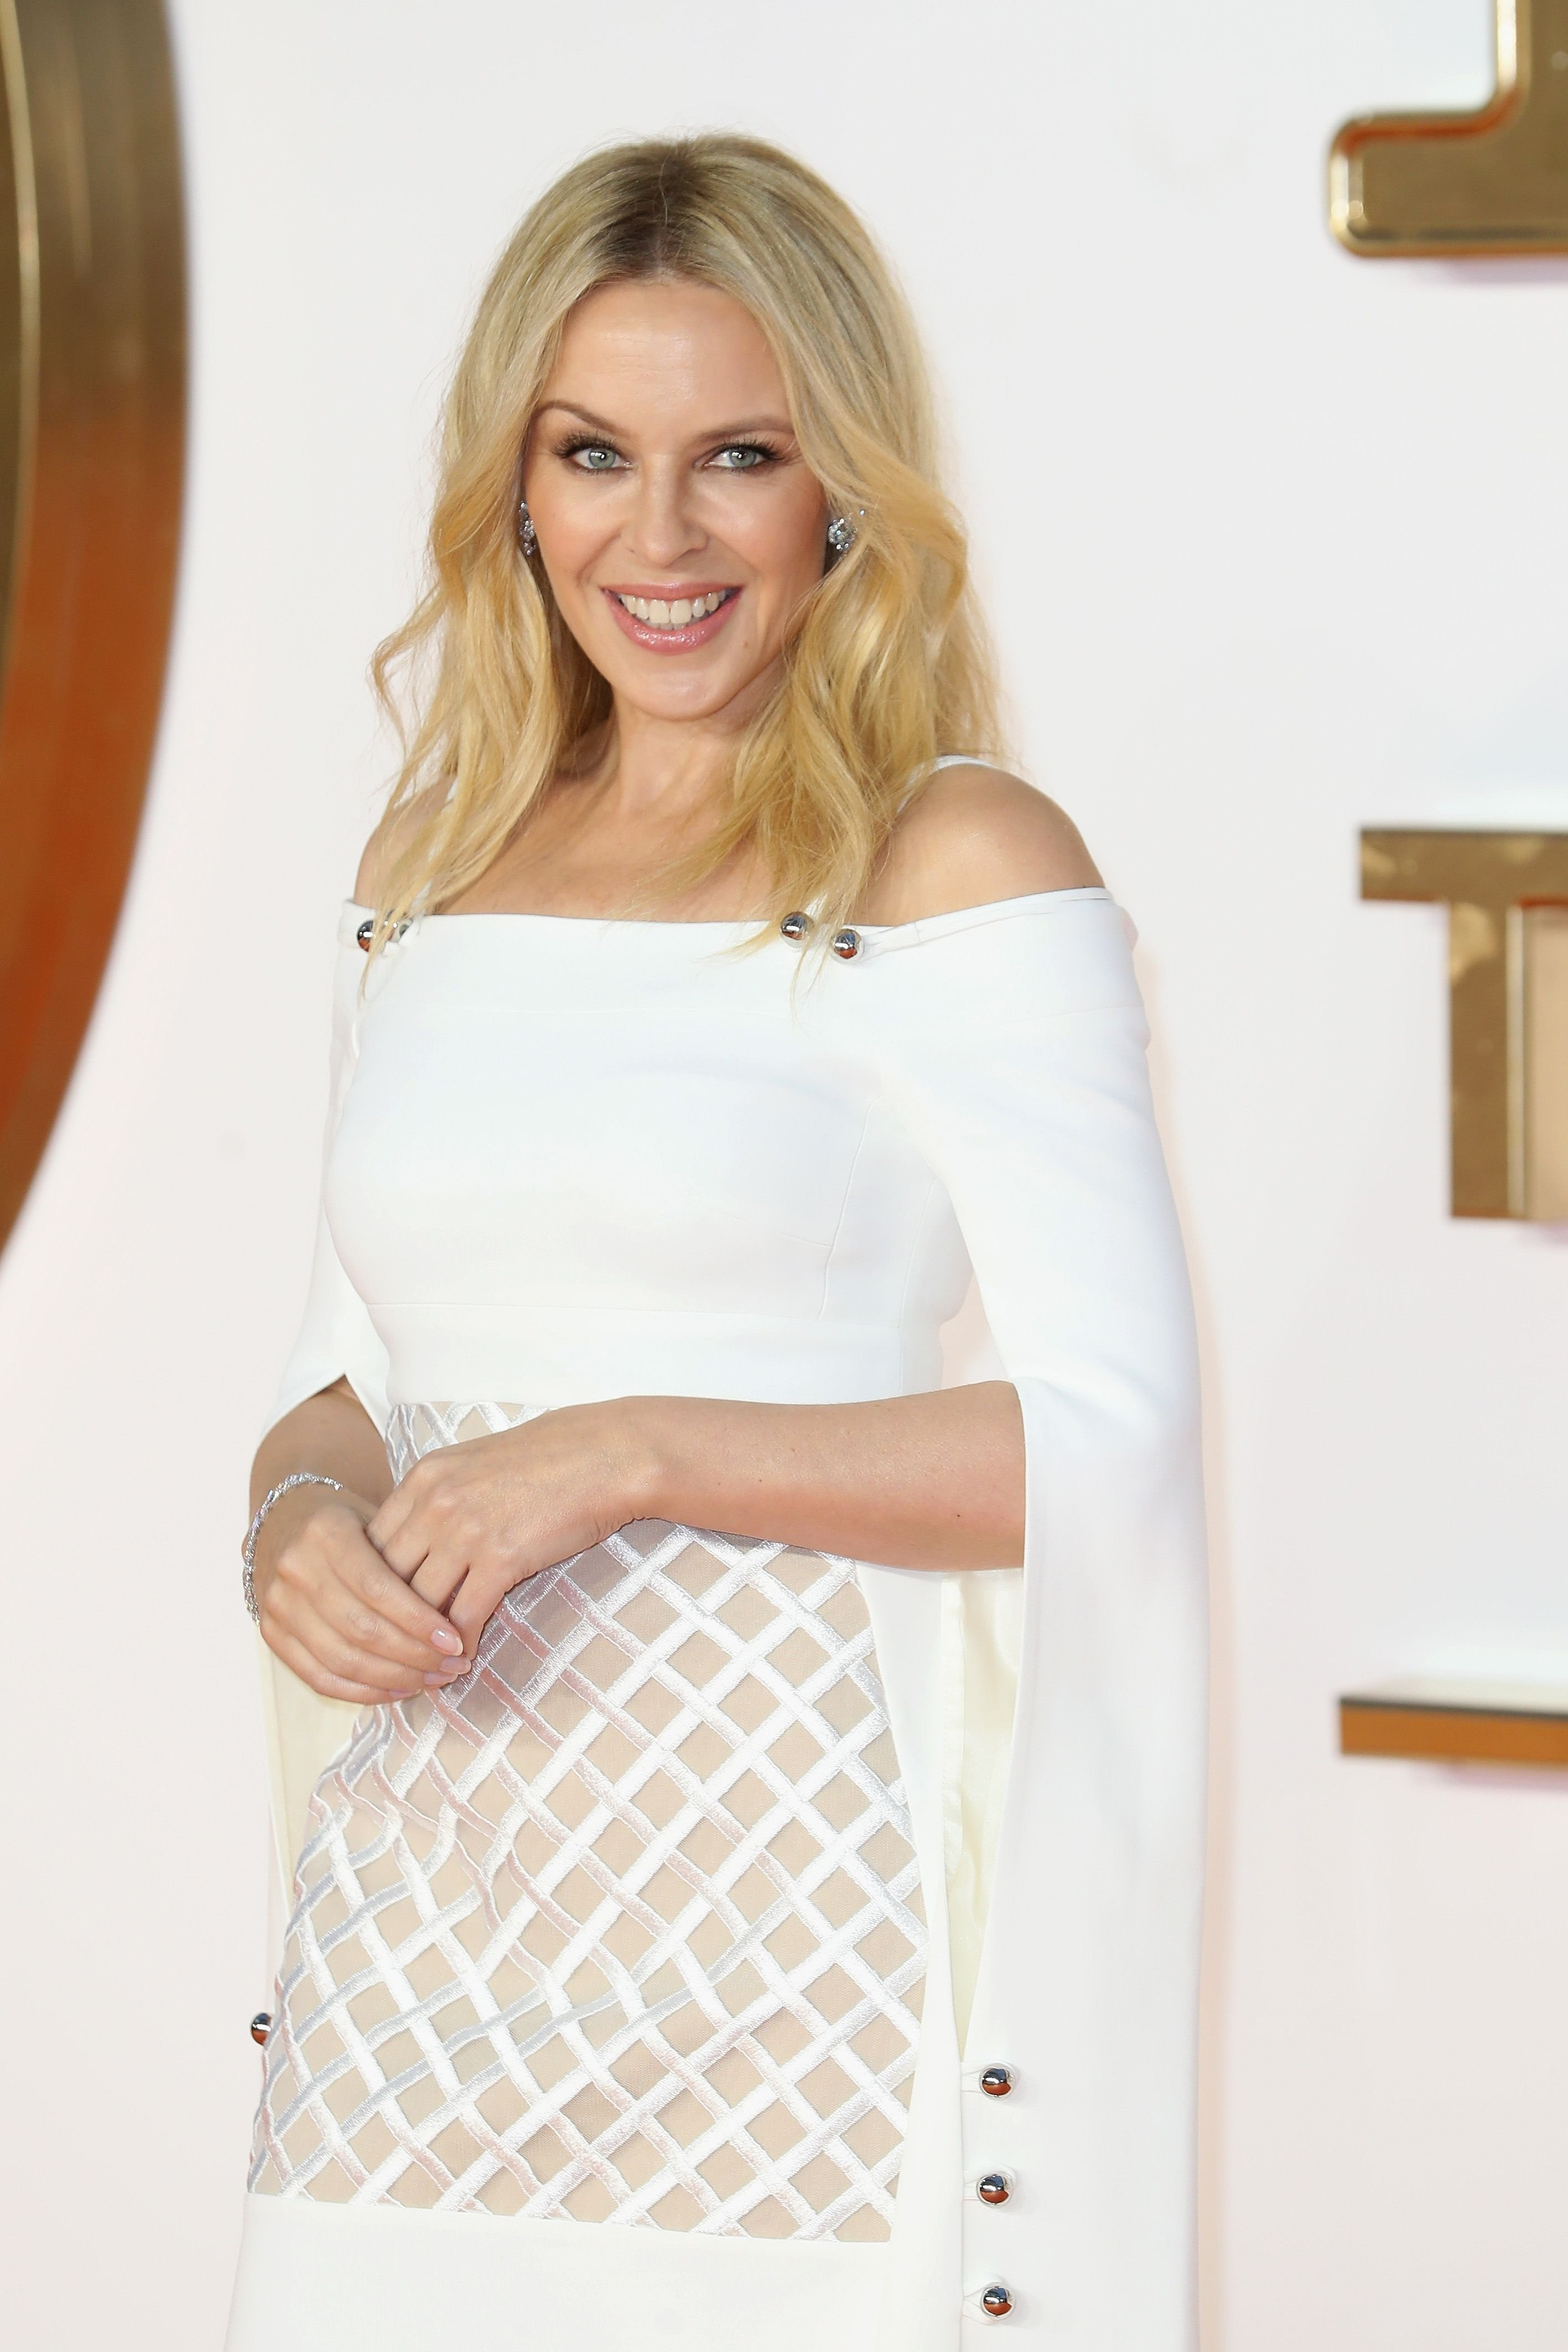 Kylie Minogue at the 'Kingsman: The Golden Circle' world premiere in 2017 in London, England   Source: Getty Images